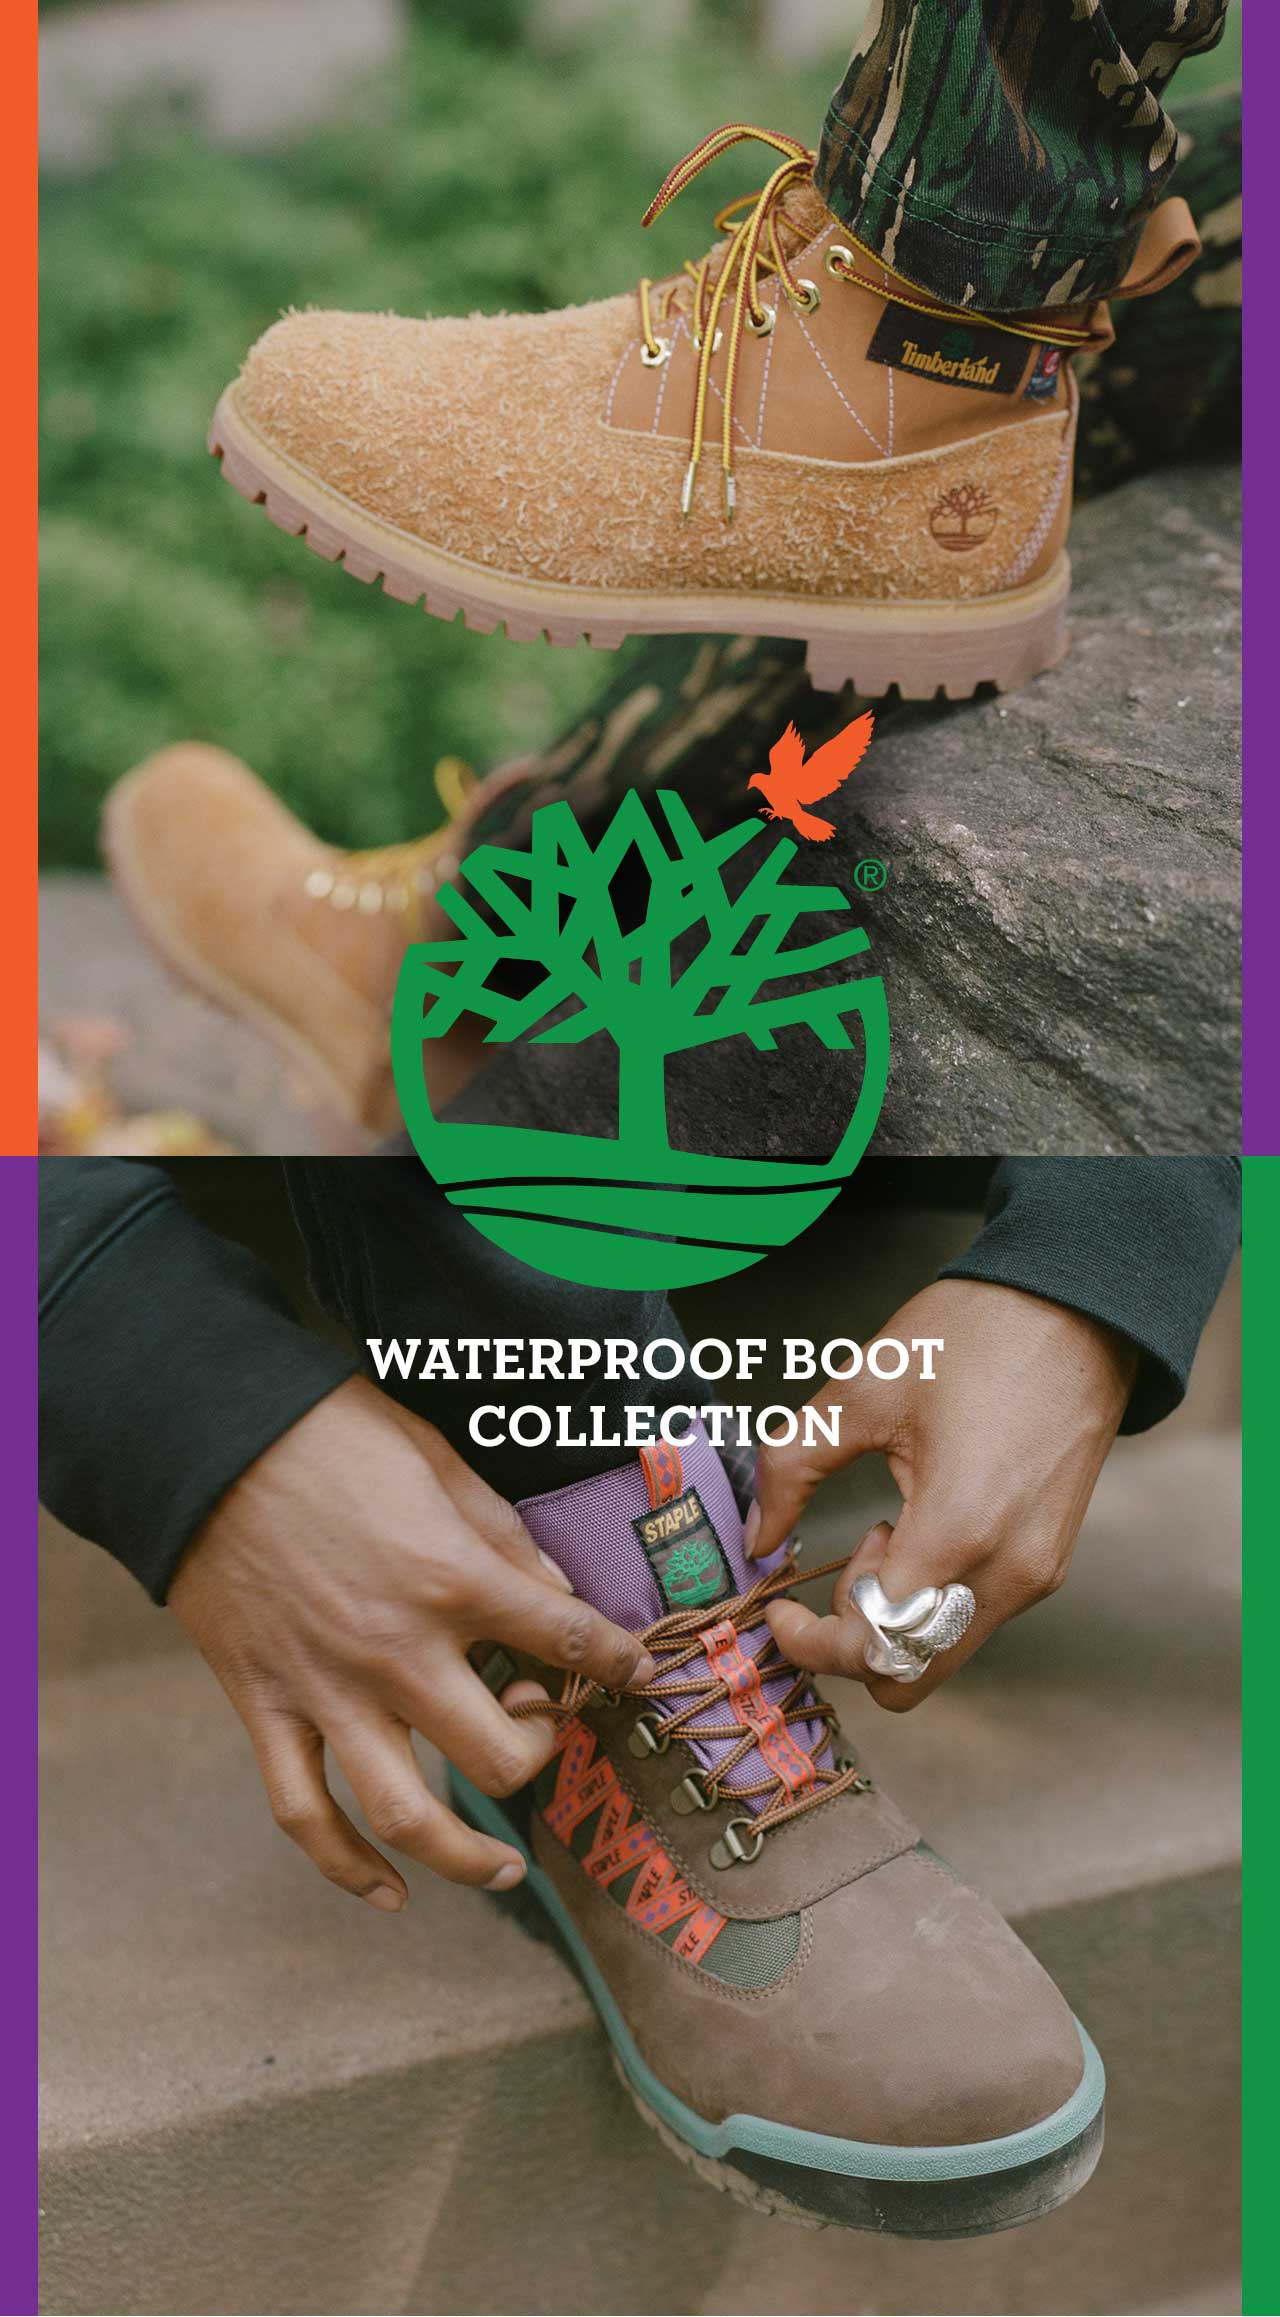 WATERPROOF BOOT COLLECTION